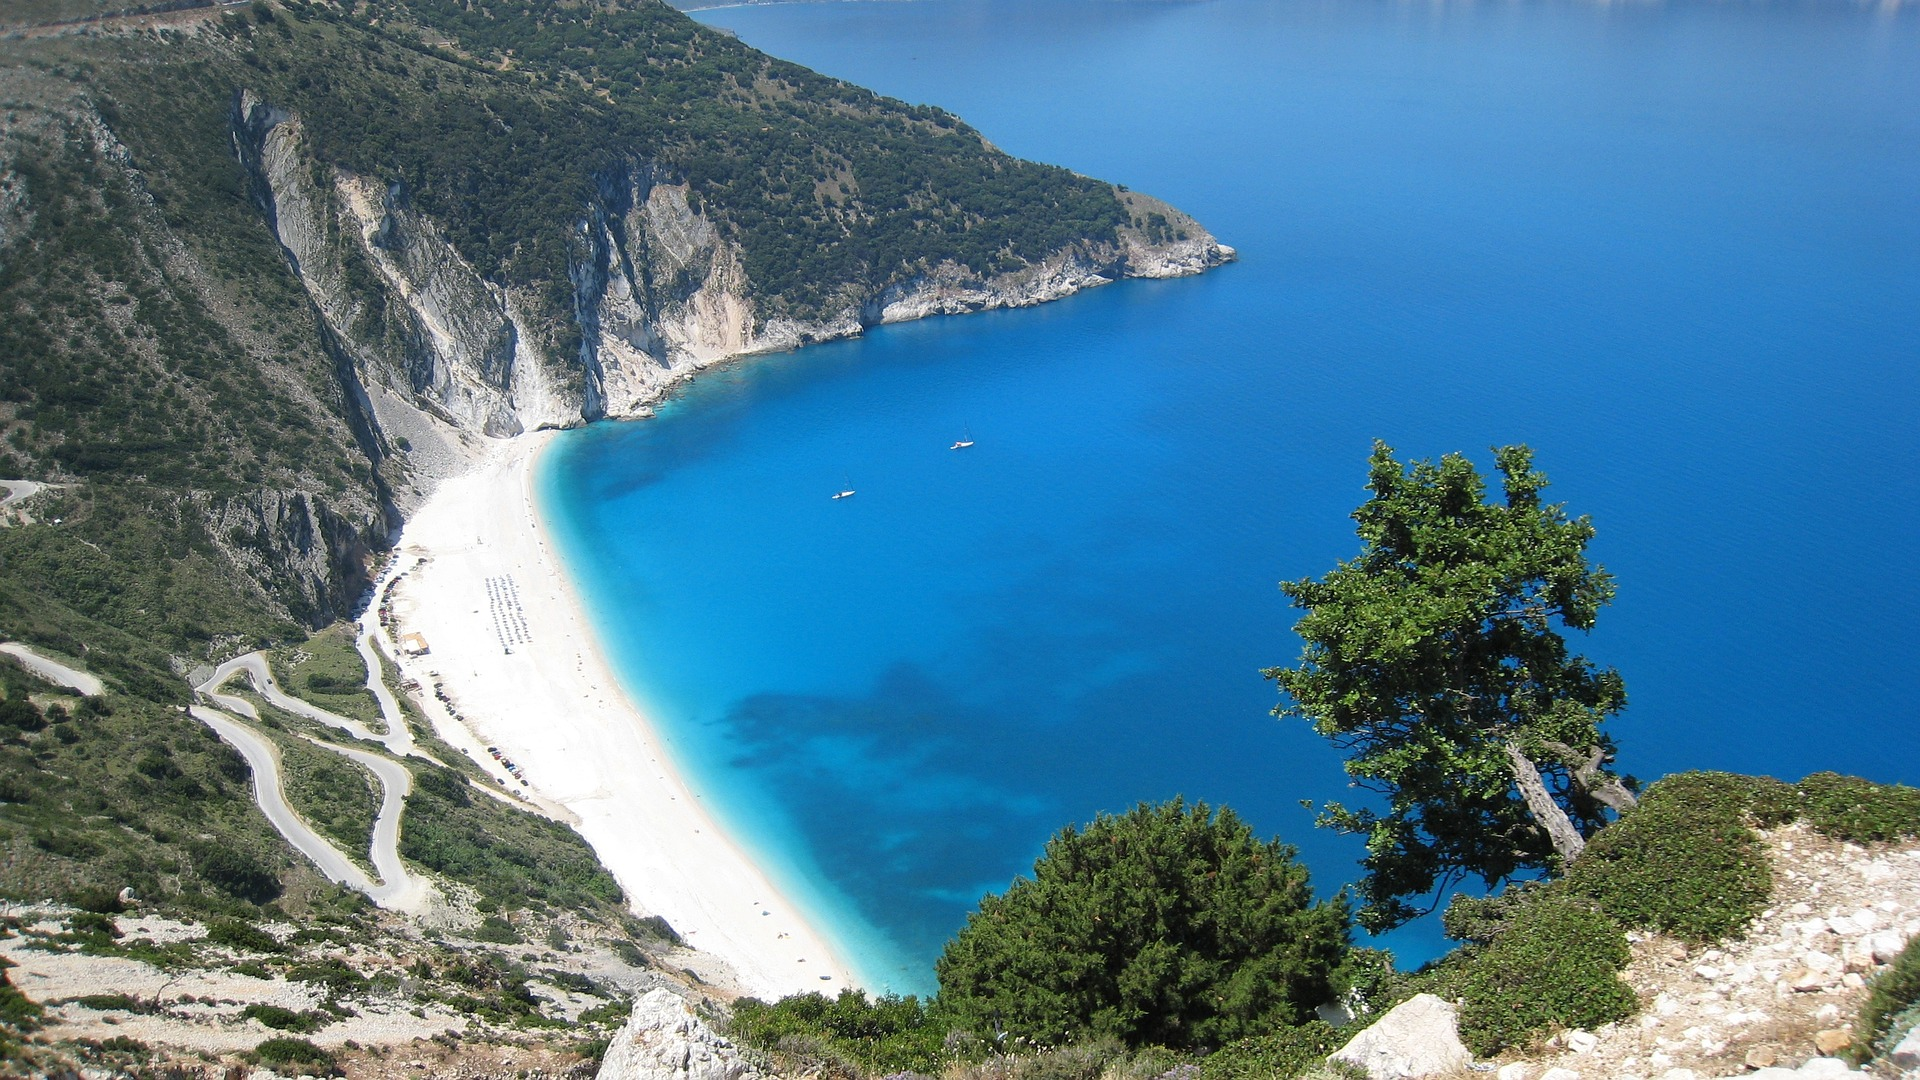 Island of Kefalonia, Greece